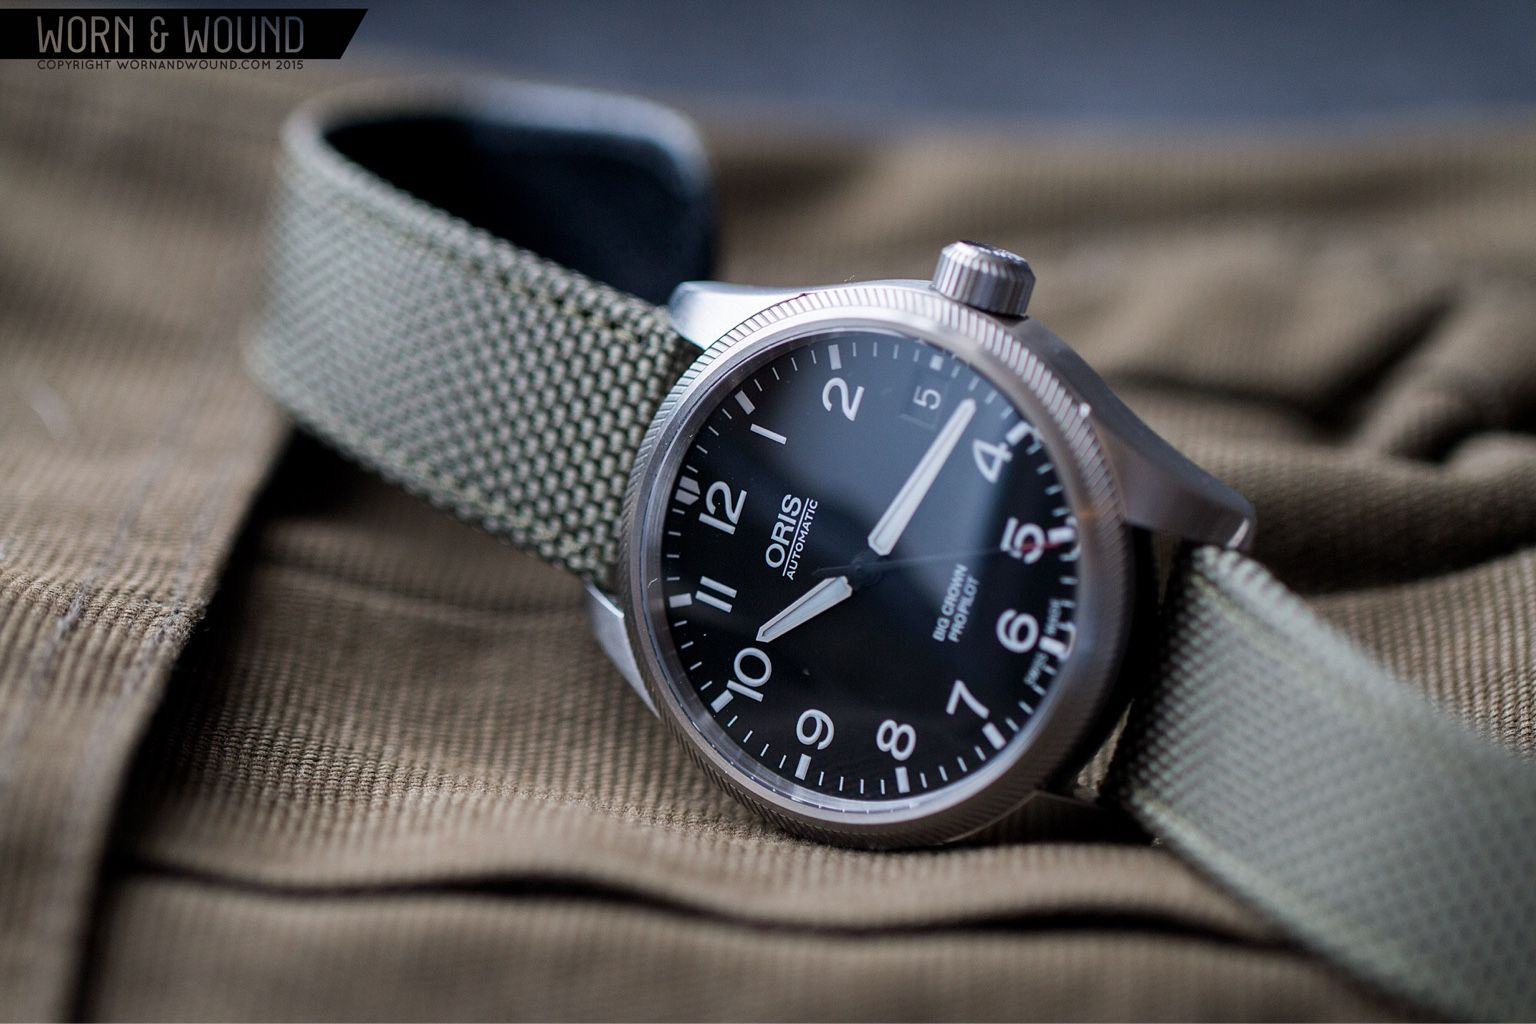 Have You Looked At The Oris Big Crown Propilot Date Worn Amp Wound Has Some Great Photos In Their Review Fashion Watches Field Watches Mens Fashion Watches